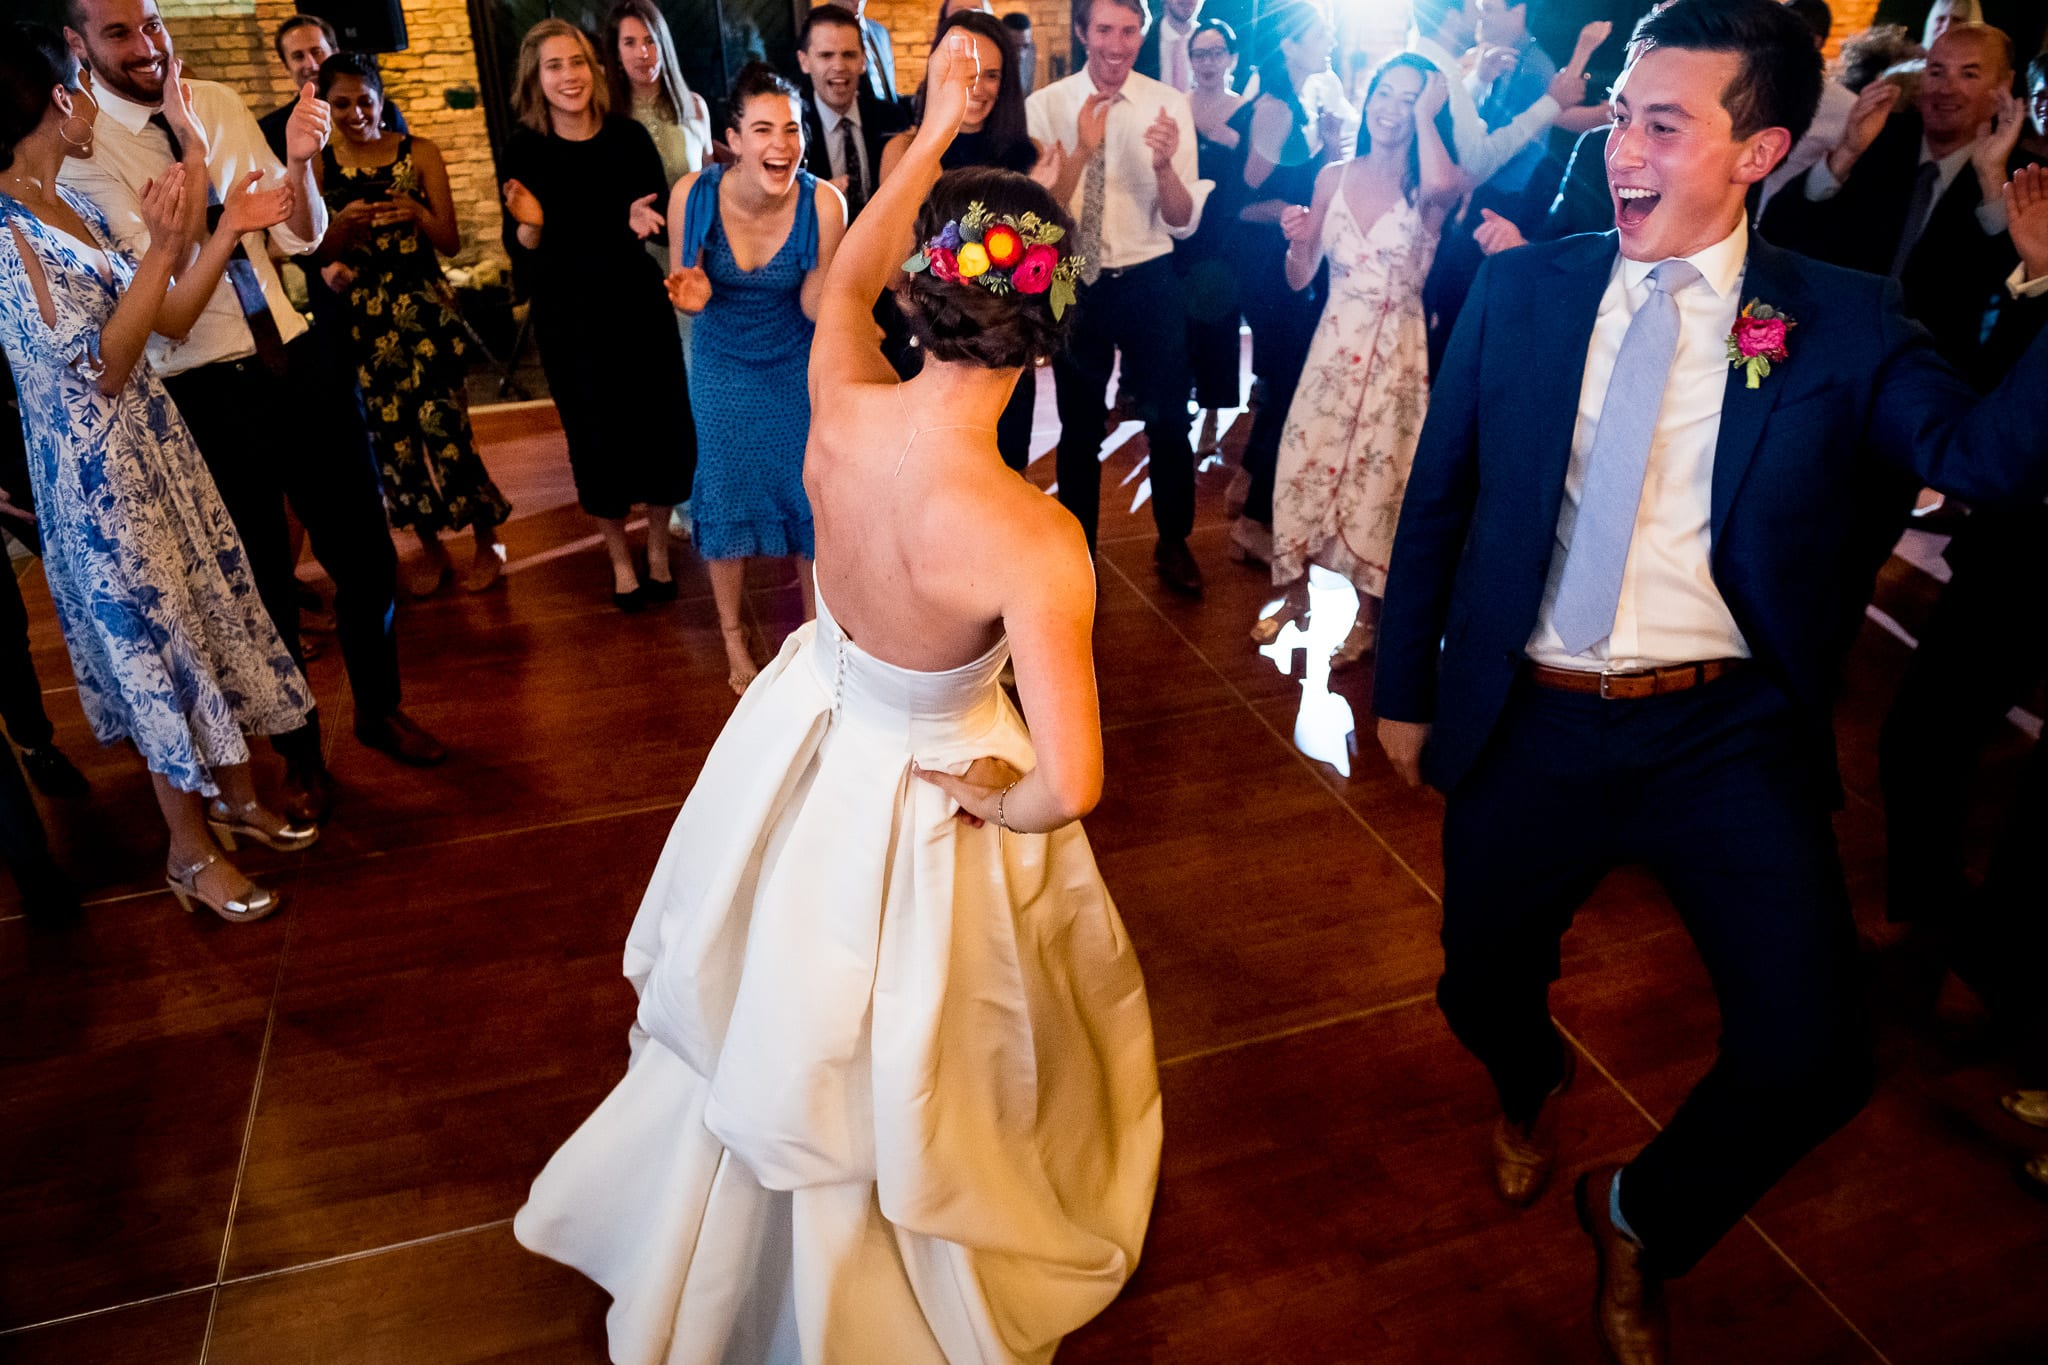 Bride and groom tear up the dance floor at their wedding